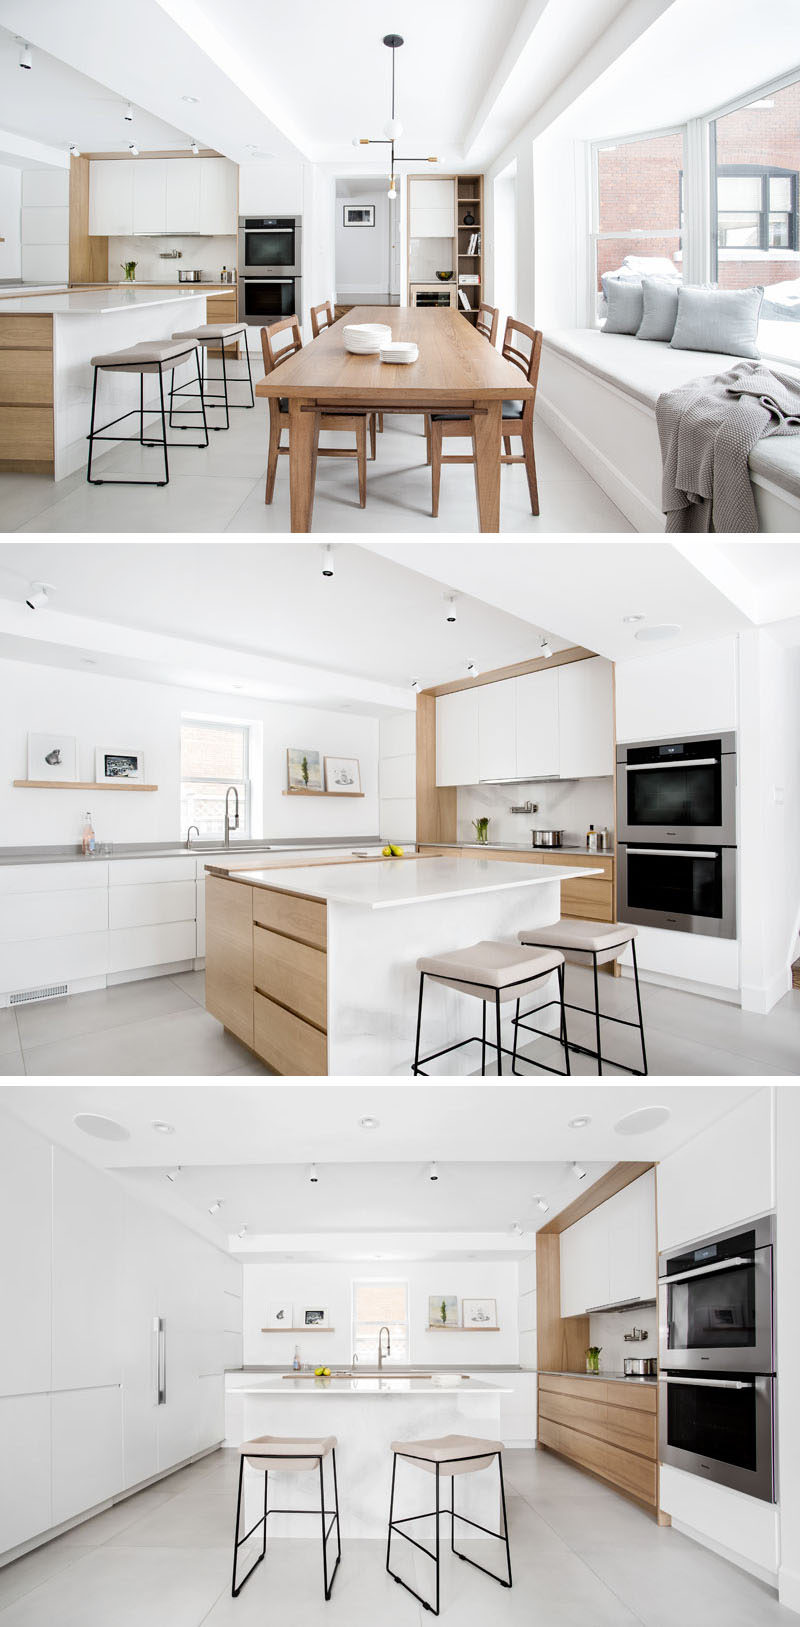 This updated kitchen and dining area is bright, welcoming and modern. The teak dining table and chairs were the only pieces that were preserved from the original kitchen design and inspired the new design. White with light wood elements was used to create the illusion of height and light.